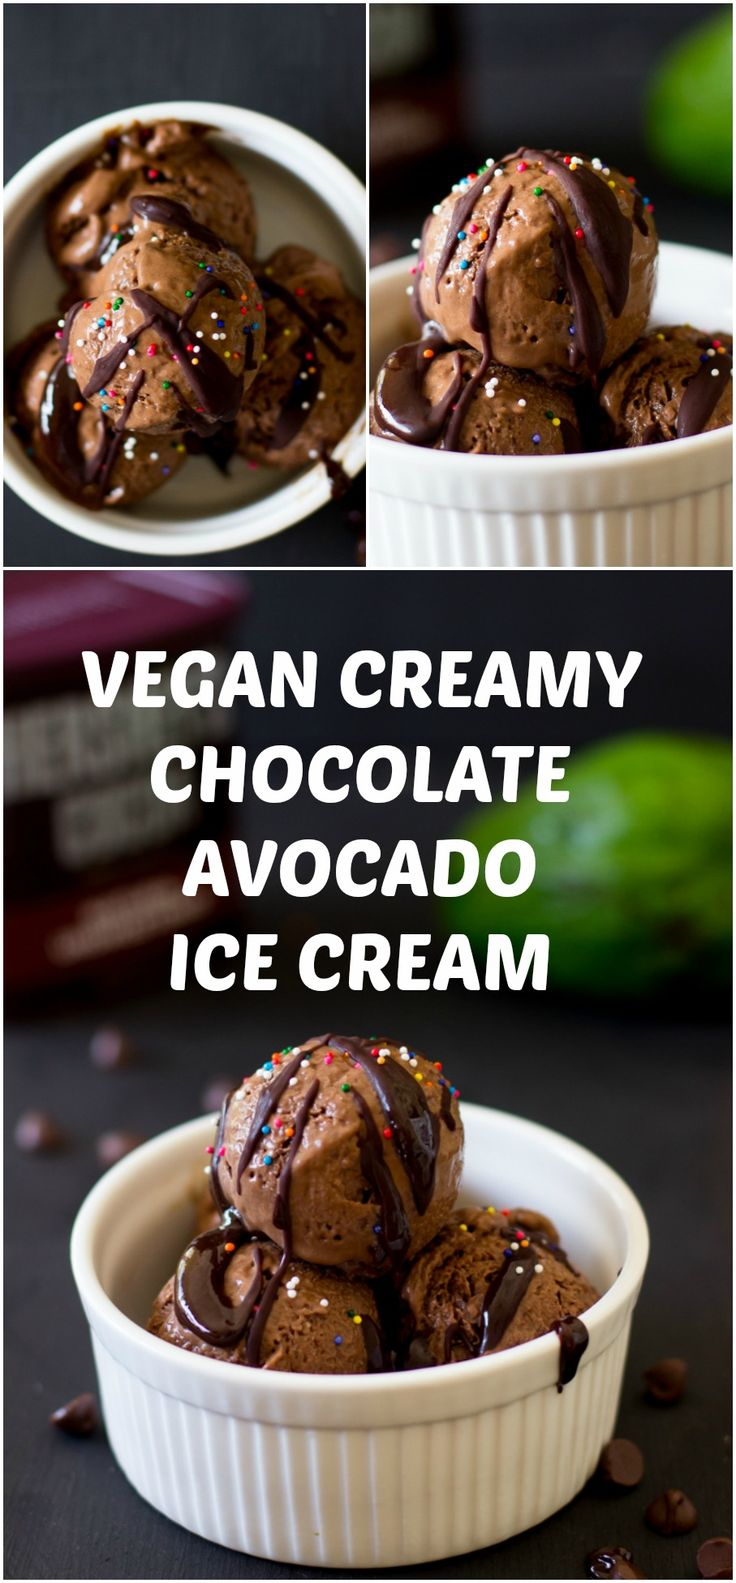 Vegan And Dairy Free Chocolate Coconut Ice Cream With Avocado Recipes ...